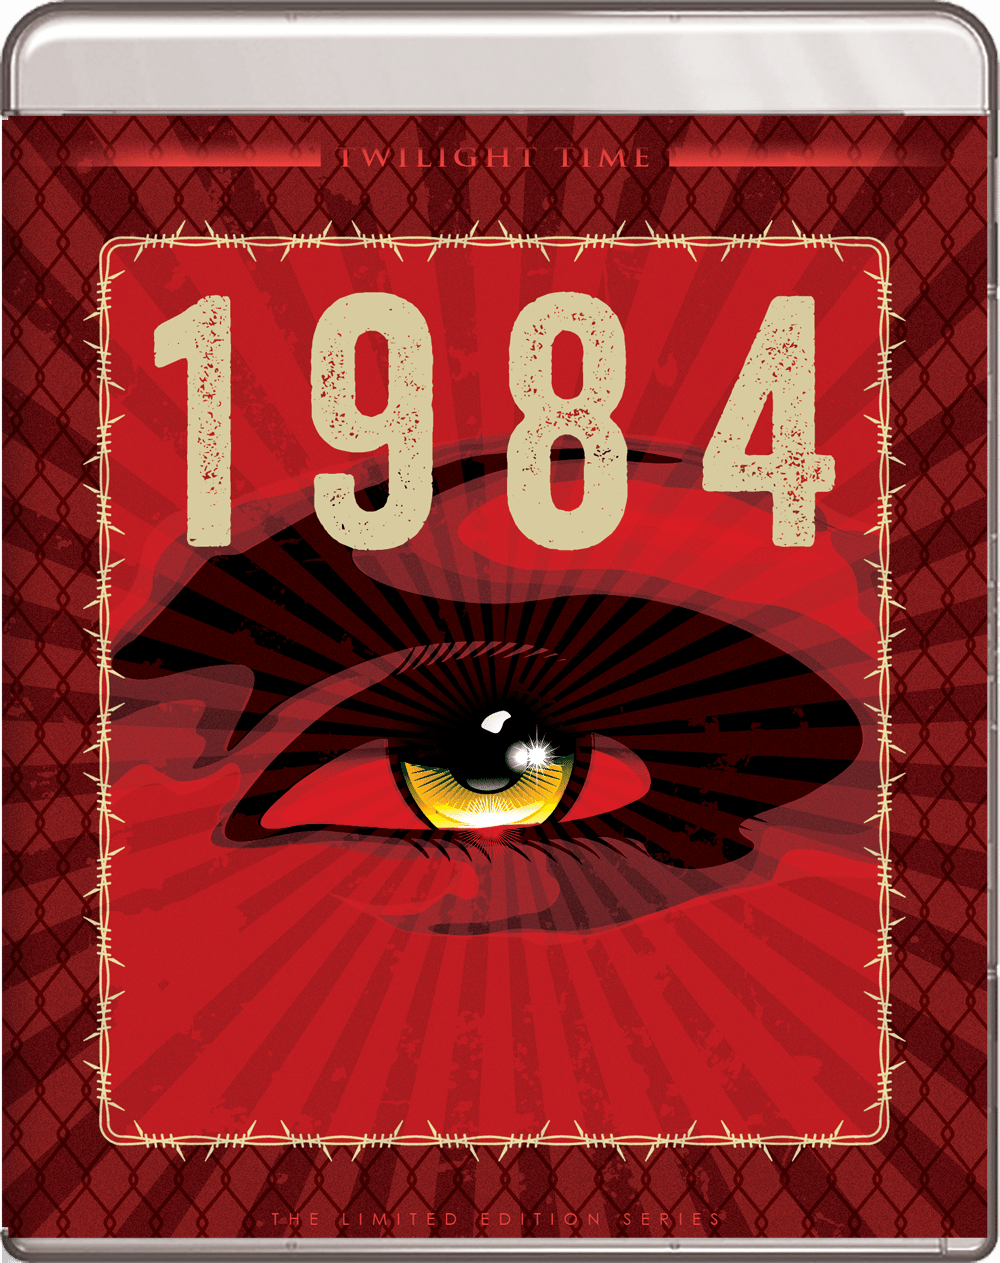 The 1984 Soundtrack has been remastered for a new limited edition Blu Ray Release of 1984